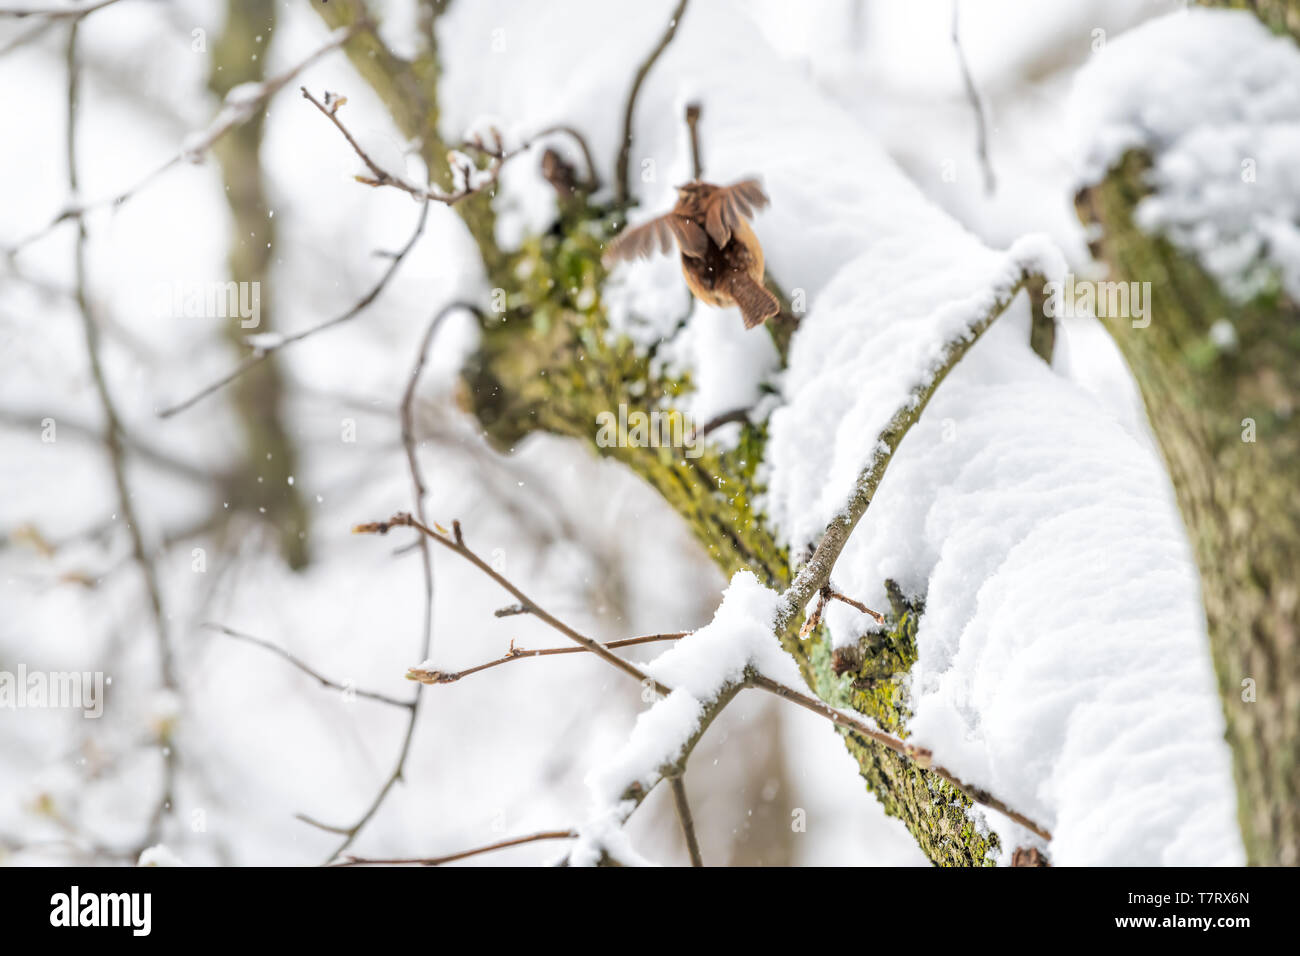 Closeup of one small brown carolina wren bird flying away on tree branch trunk during heavy winter snow colorful in Virginia with plumage wings Stock Photo